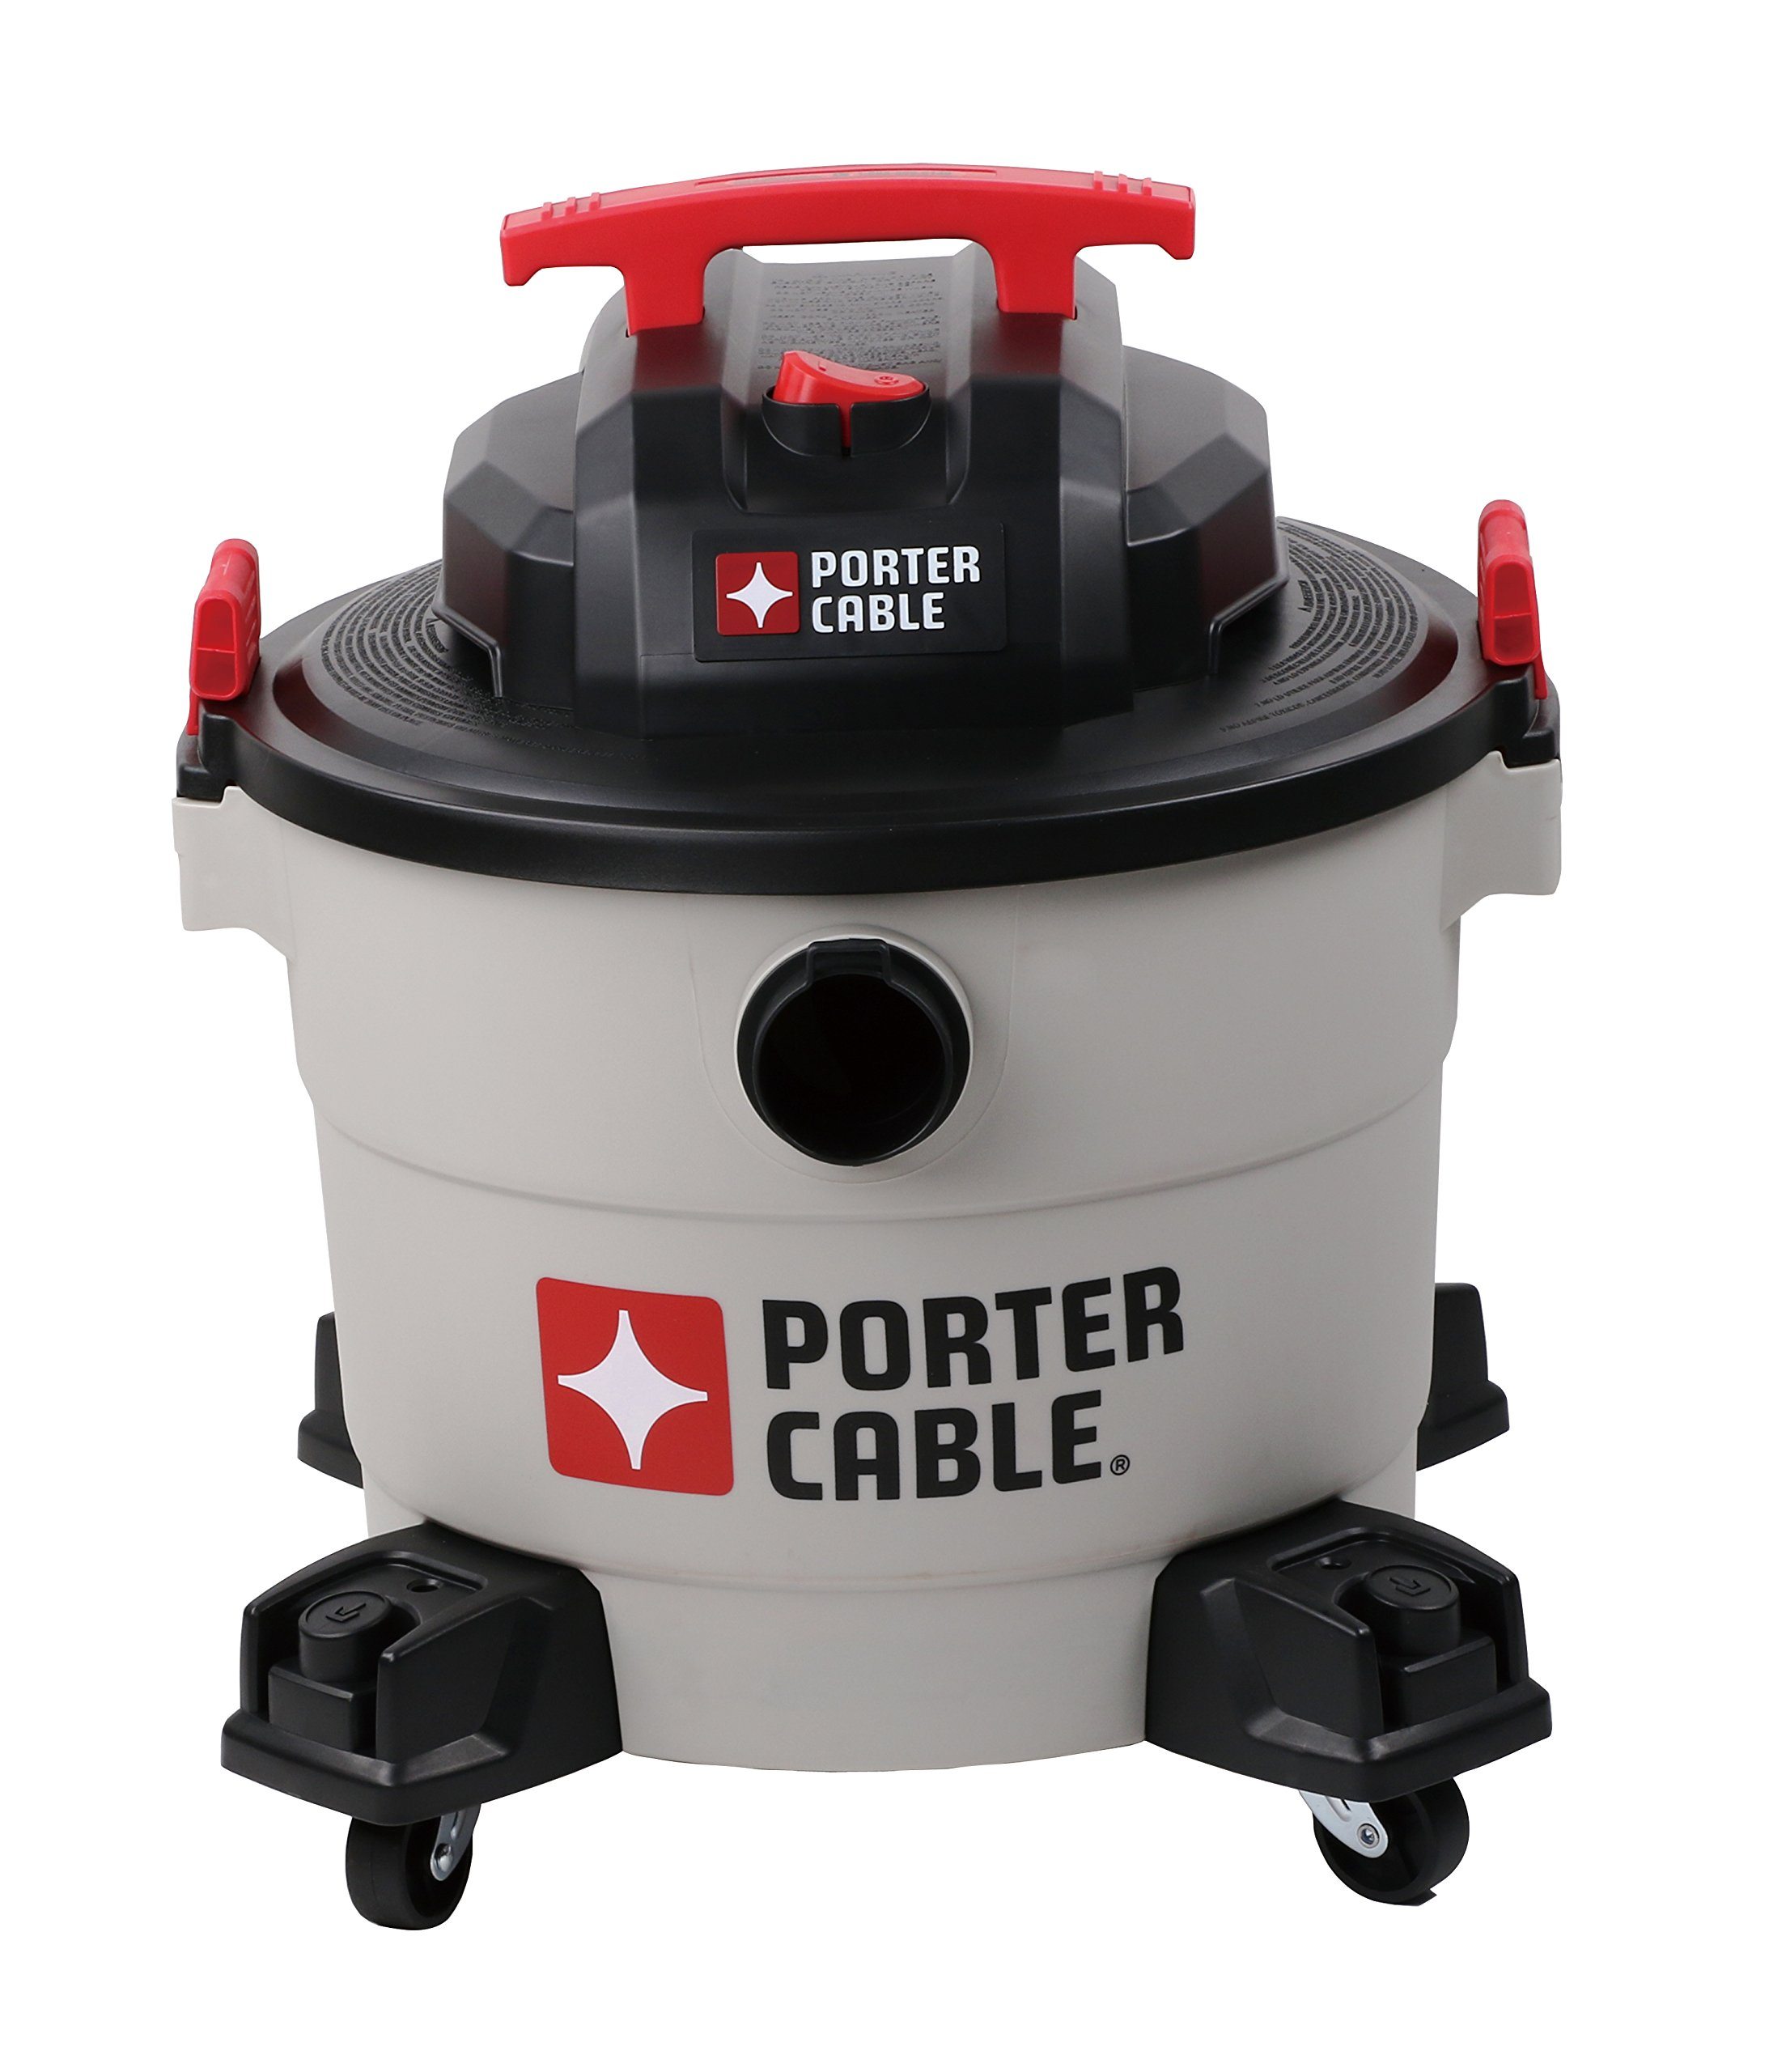 Porter-Cable Wet/Dry Vacuum, 9 Gallon, 5 Horsepower - Corded by PORTER-CABLE